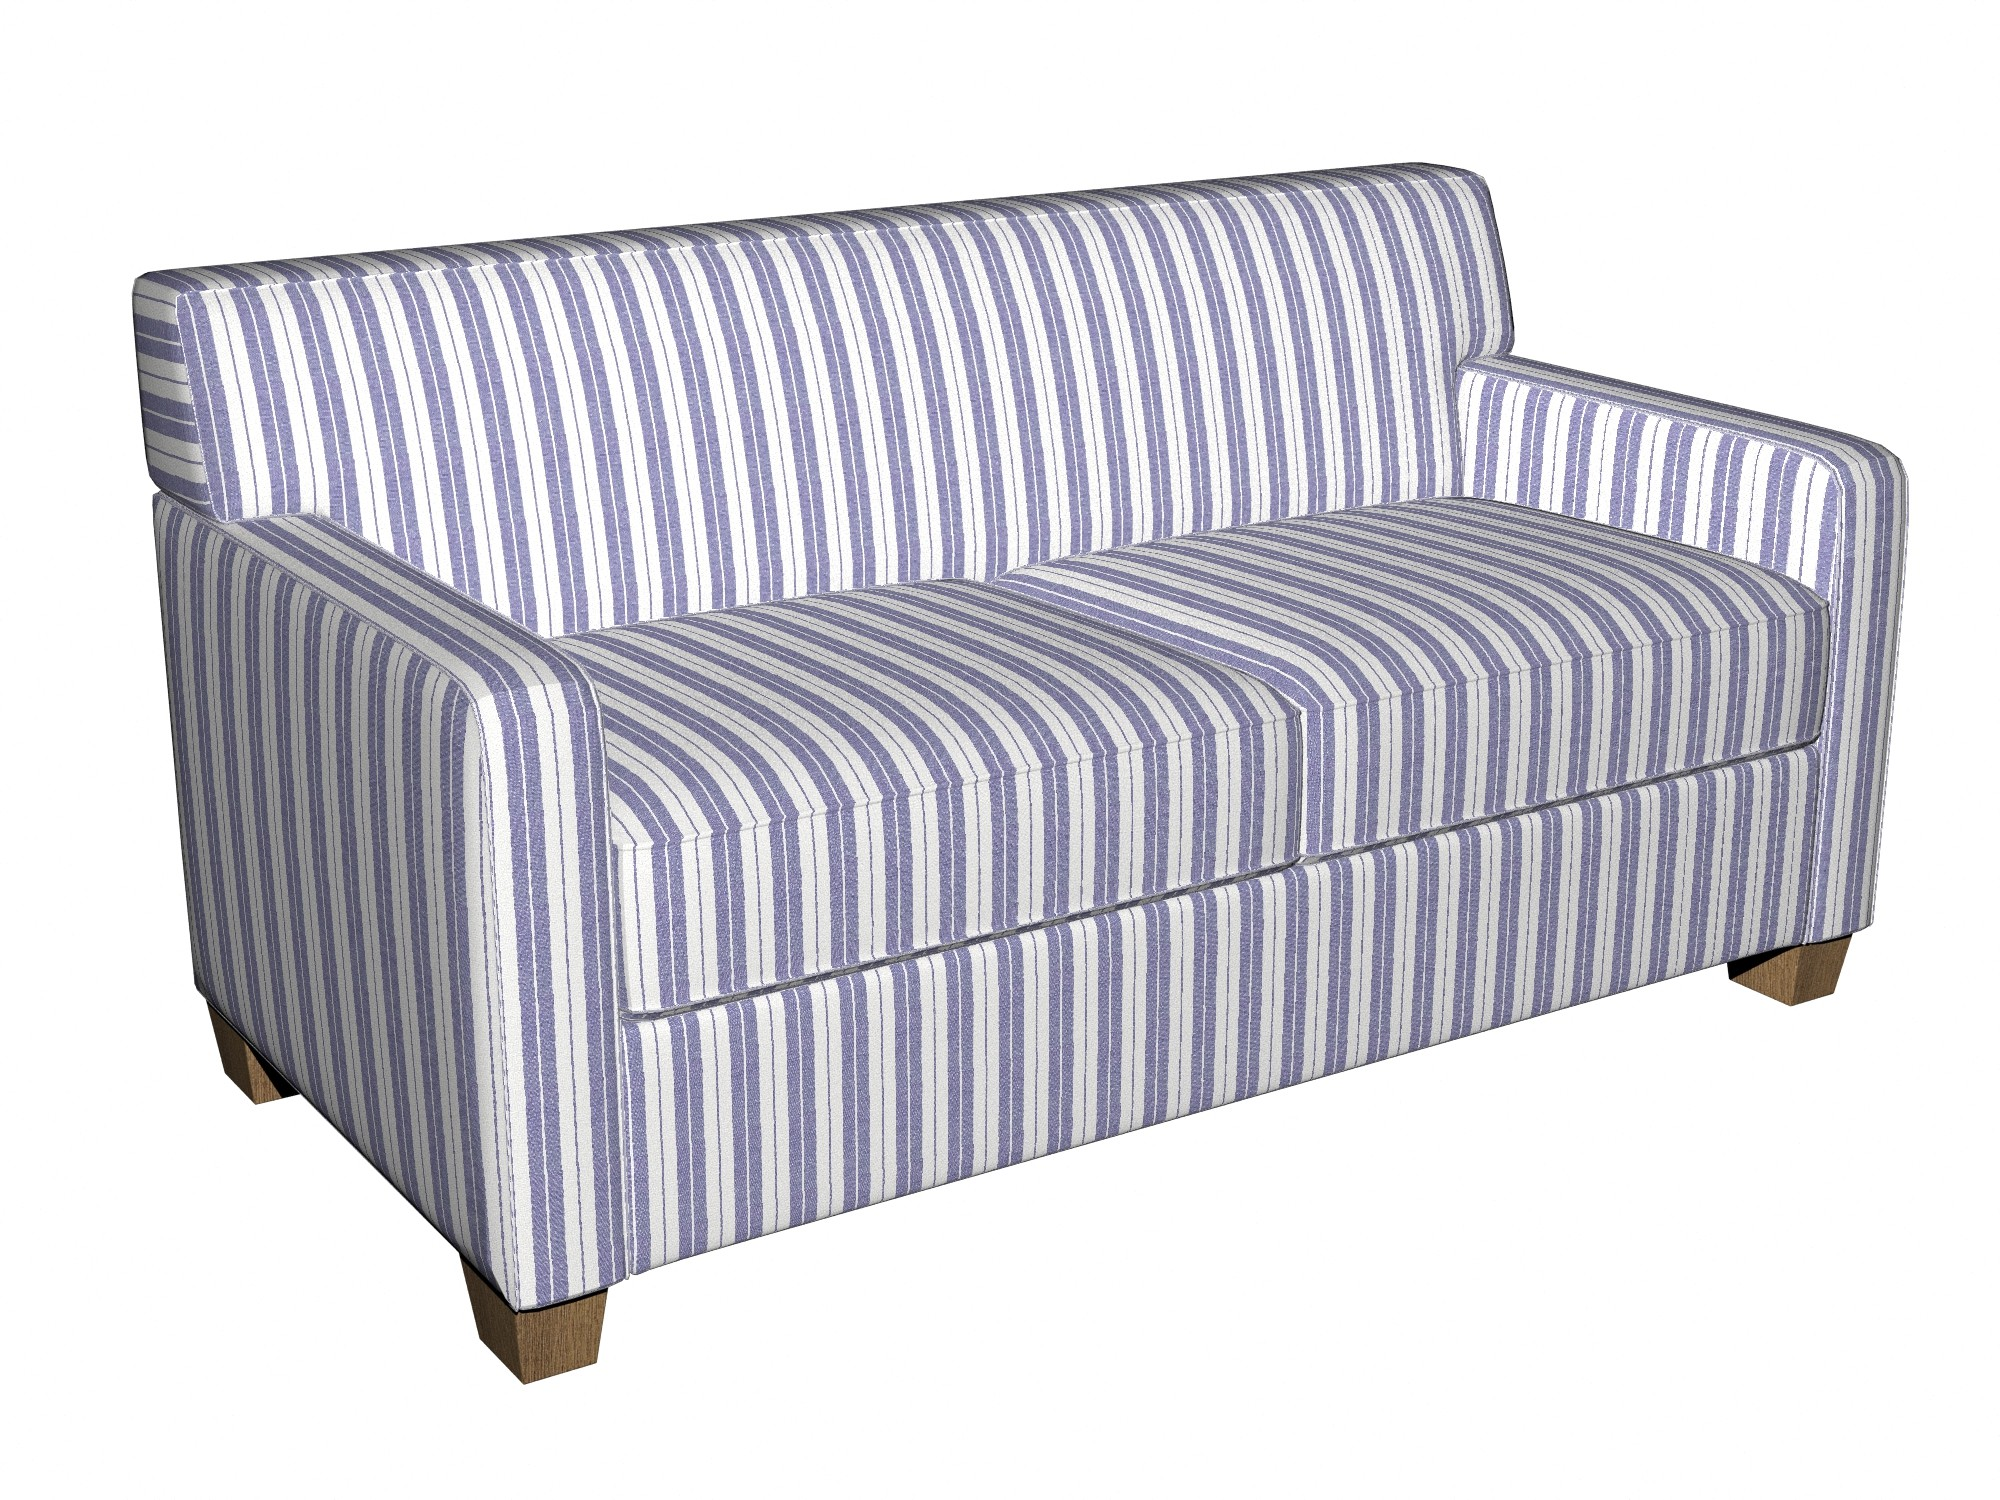 Blue And White Striped Chair Striped Sofa Fabrics Brokeasshome